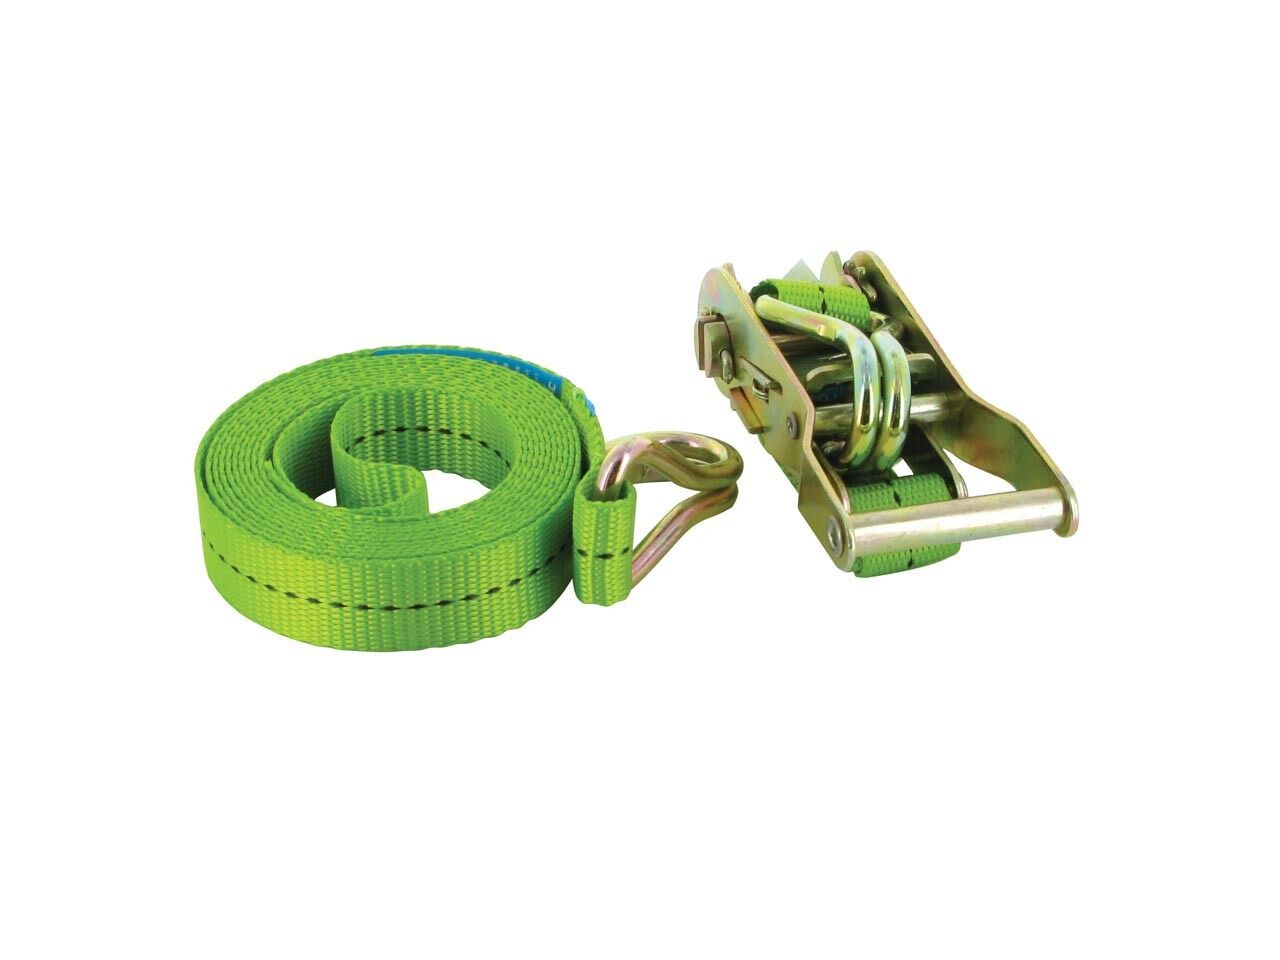 Silverline 493651 Ratchet Tie Down Down Down Strap J-crochet 3 m x 25 mm Rated 350 kg capacité 1 402b3a